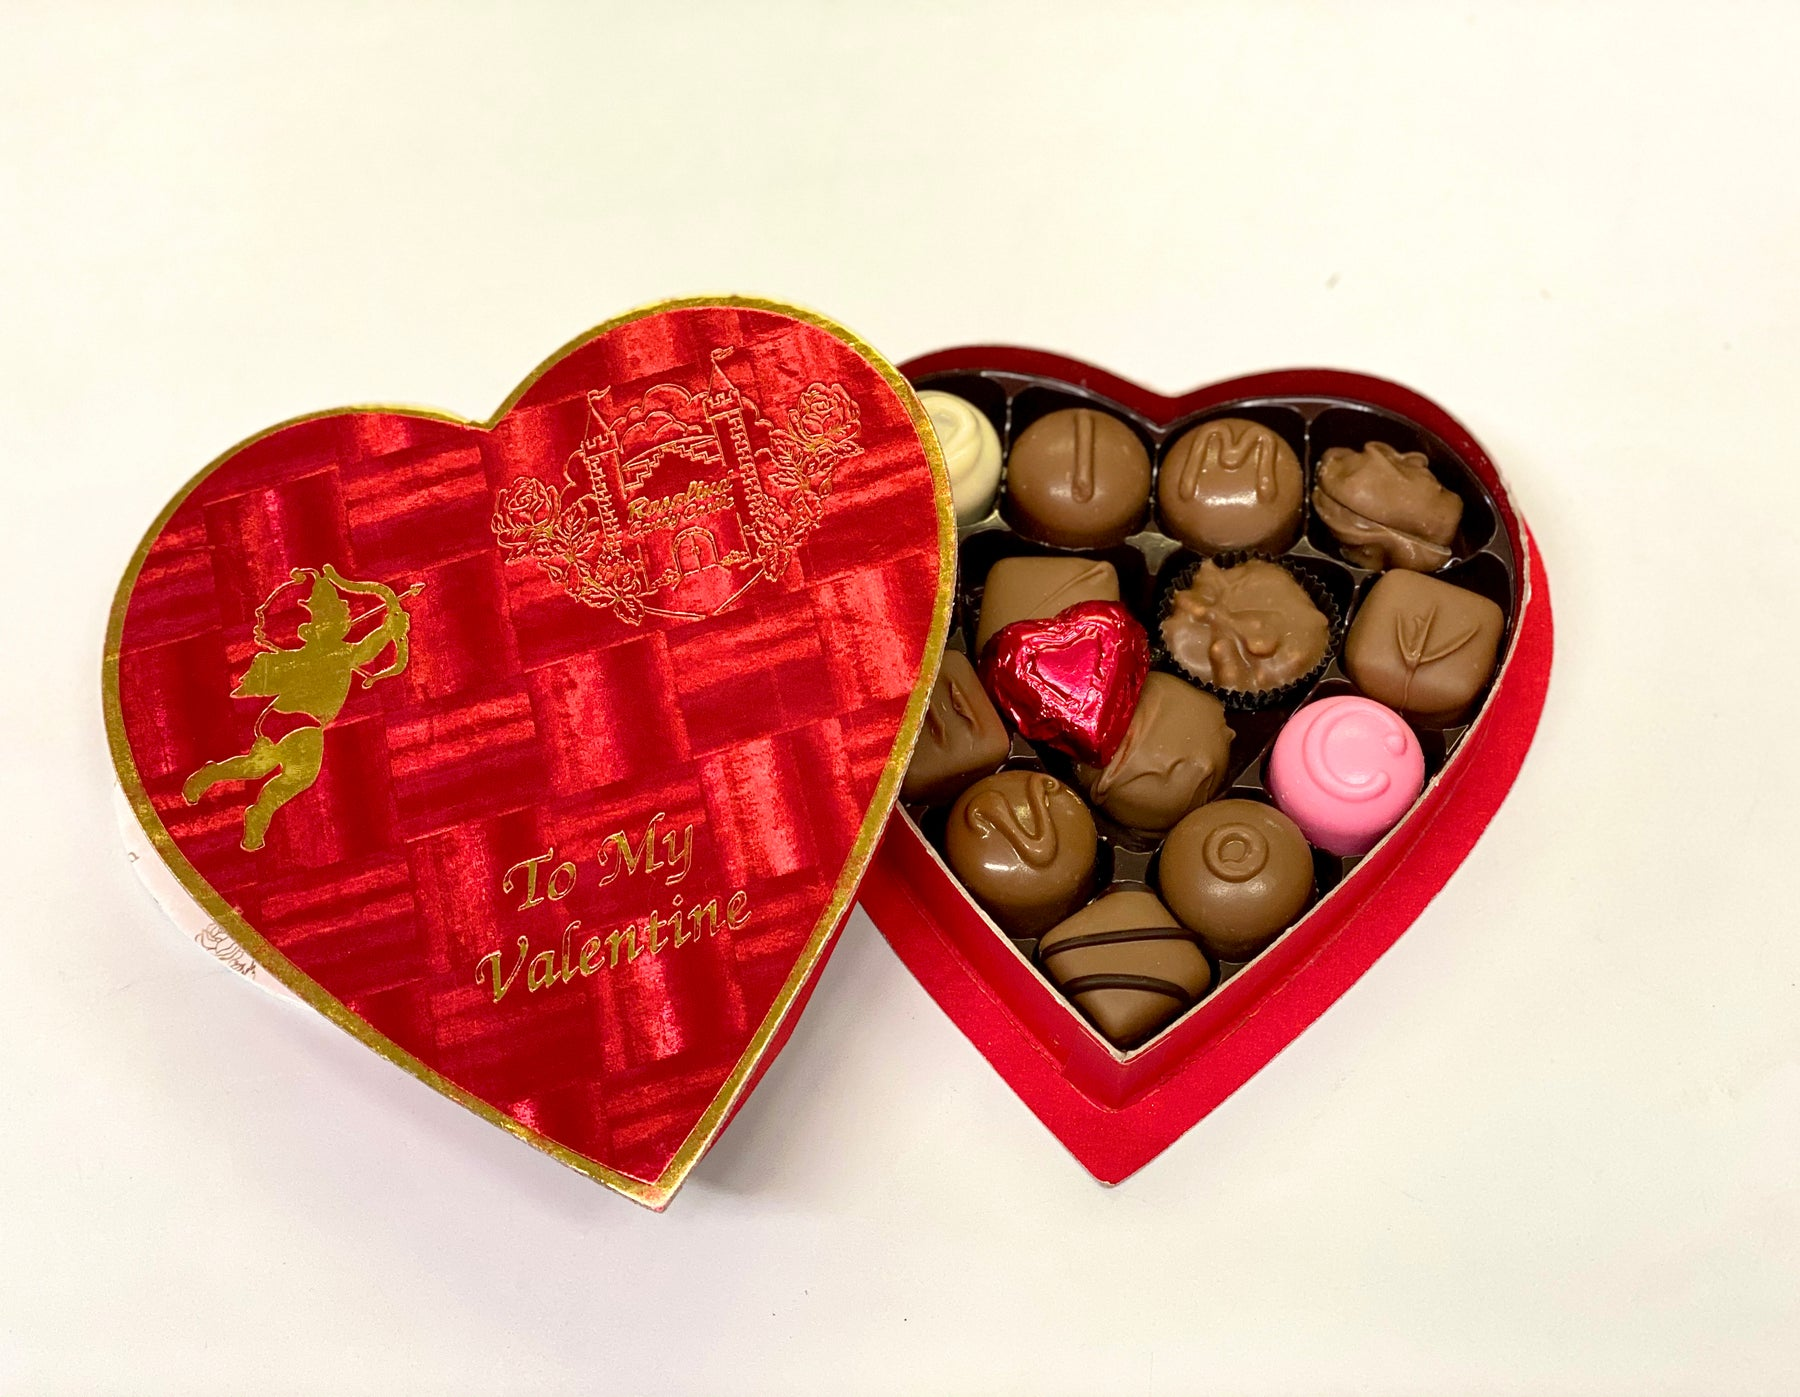 8oz Cupid Heart Assortment